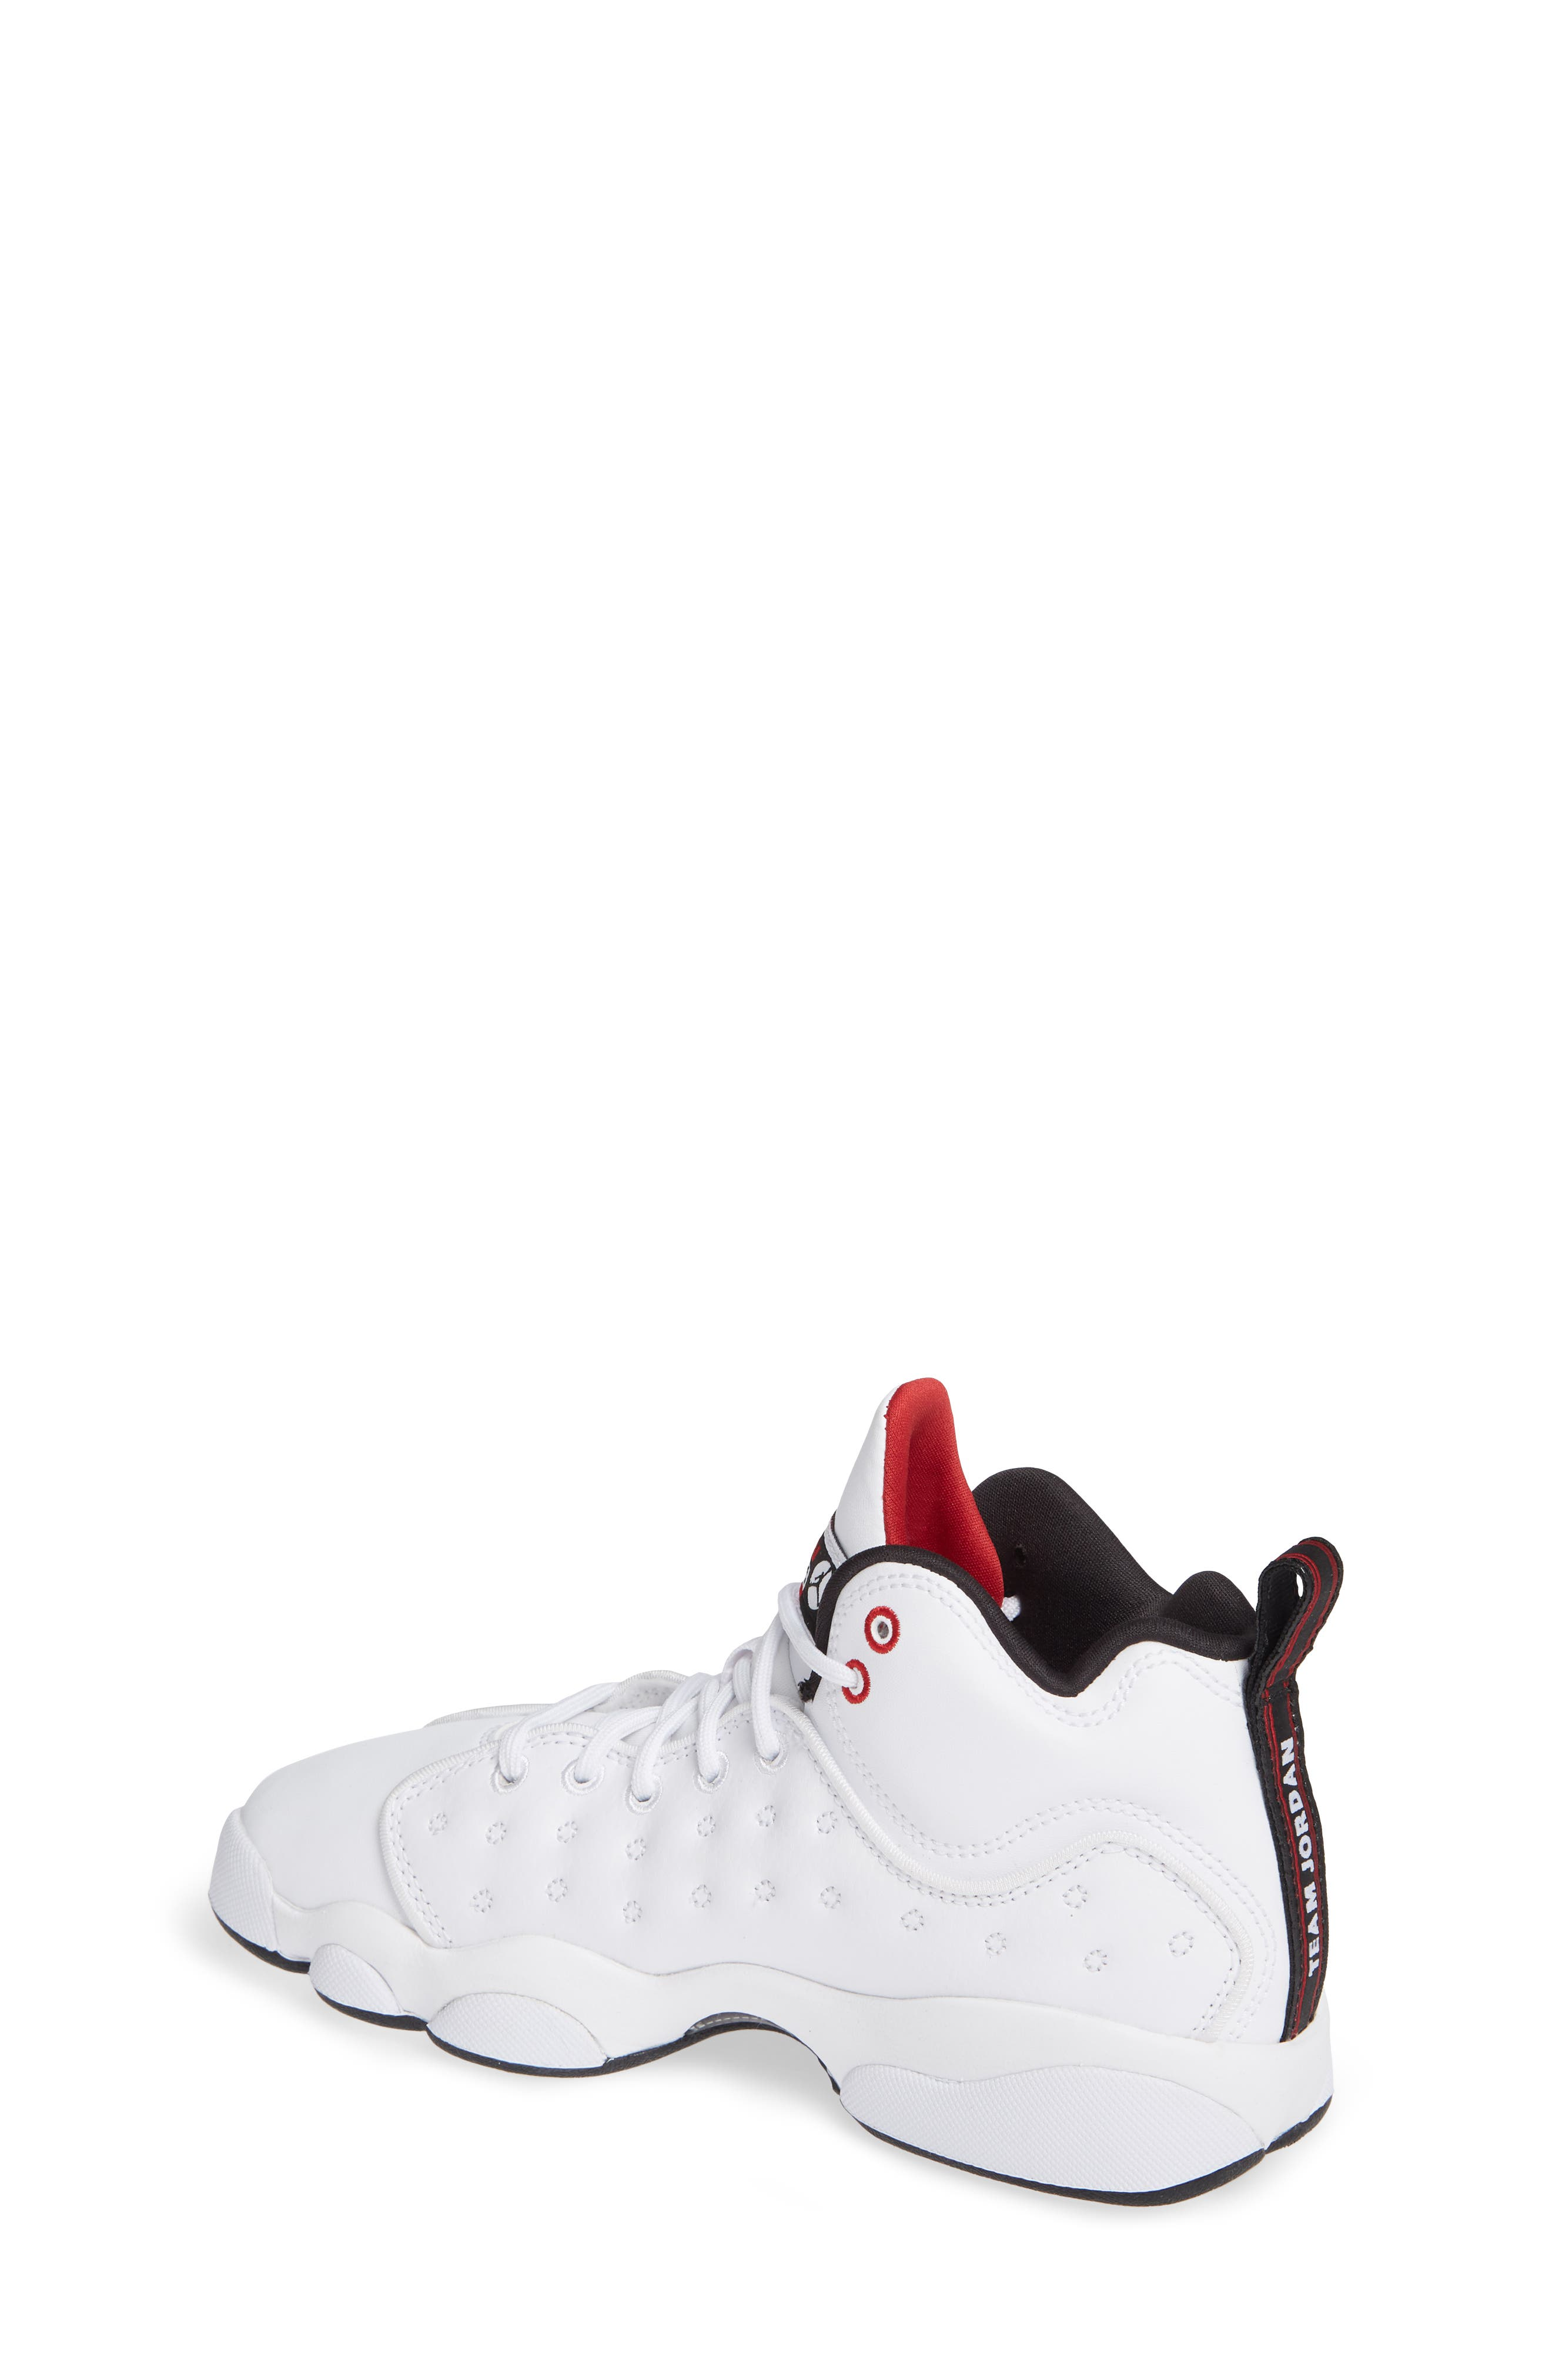 Jordan Jumpman Team II Sneaker,                             Alternate thumbnail 2, color,                             WHITE/ BLACK/ GYM RED